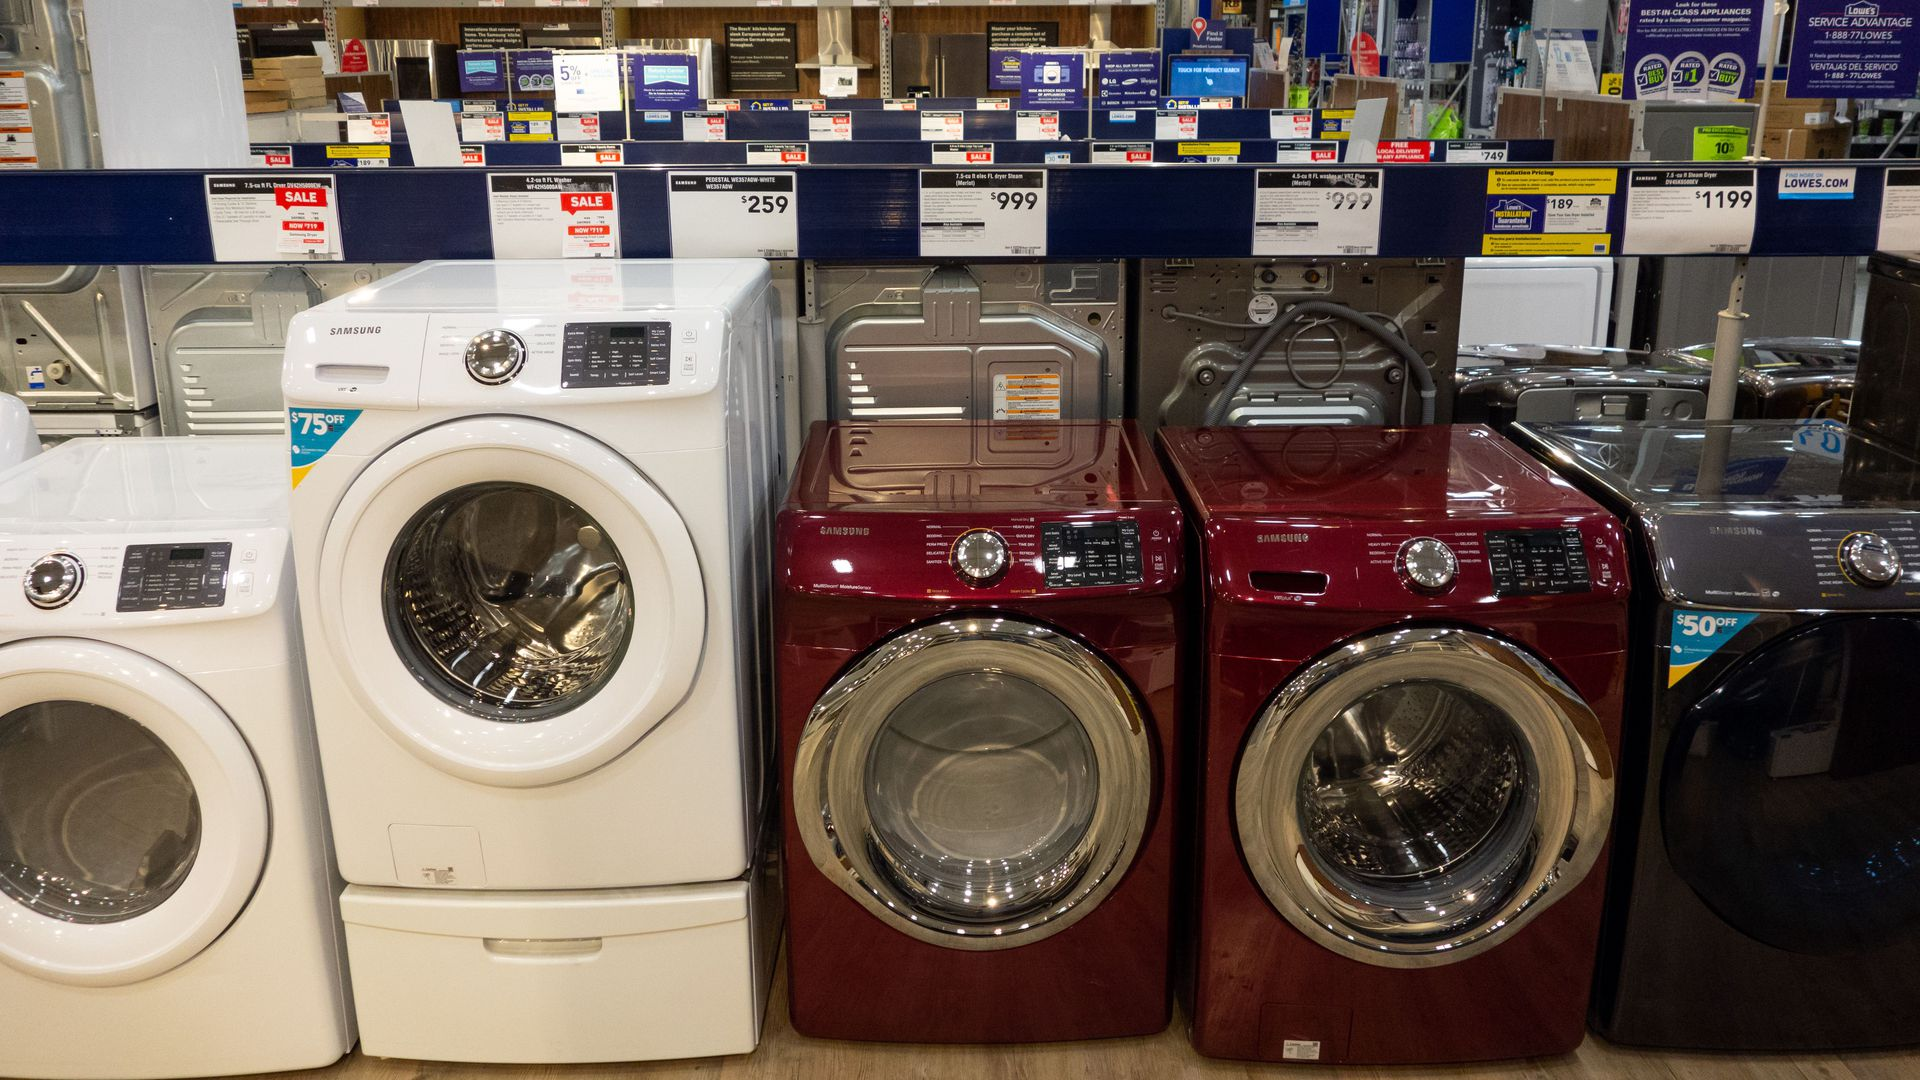 In this image, a row of different colors and brands of washing machines sit in a store.